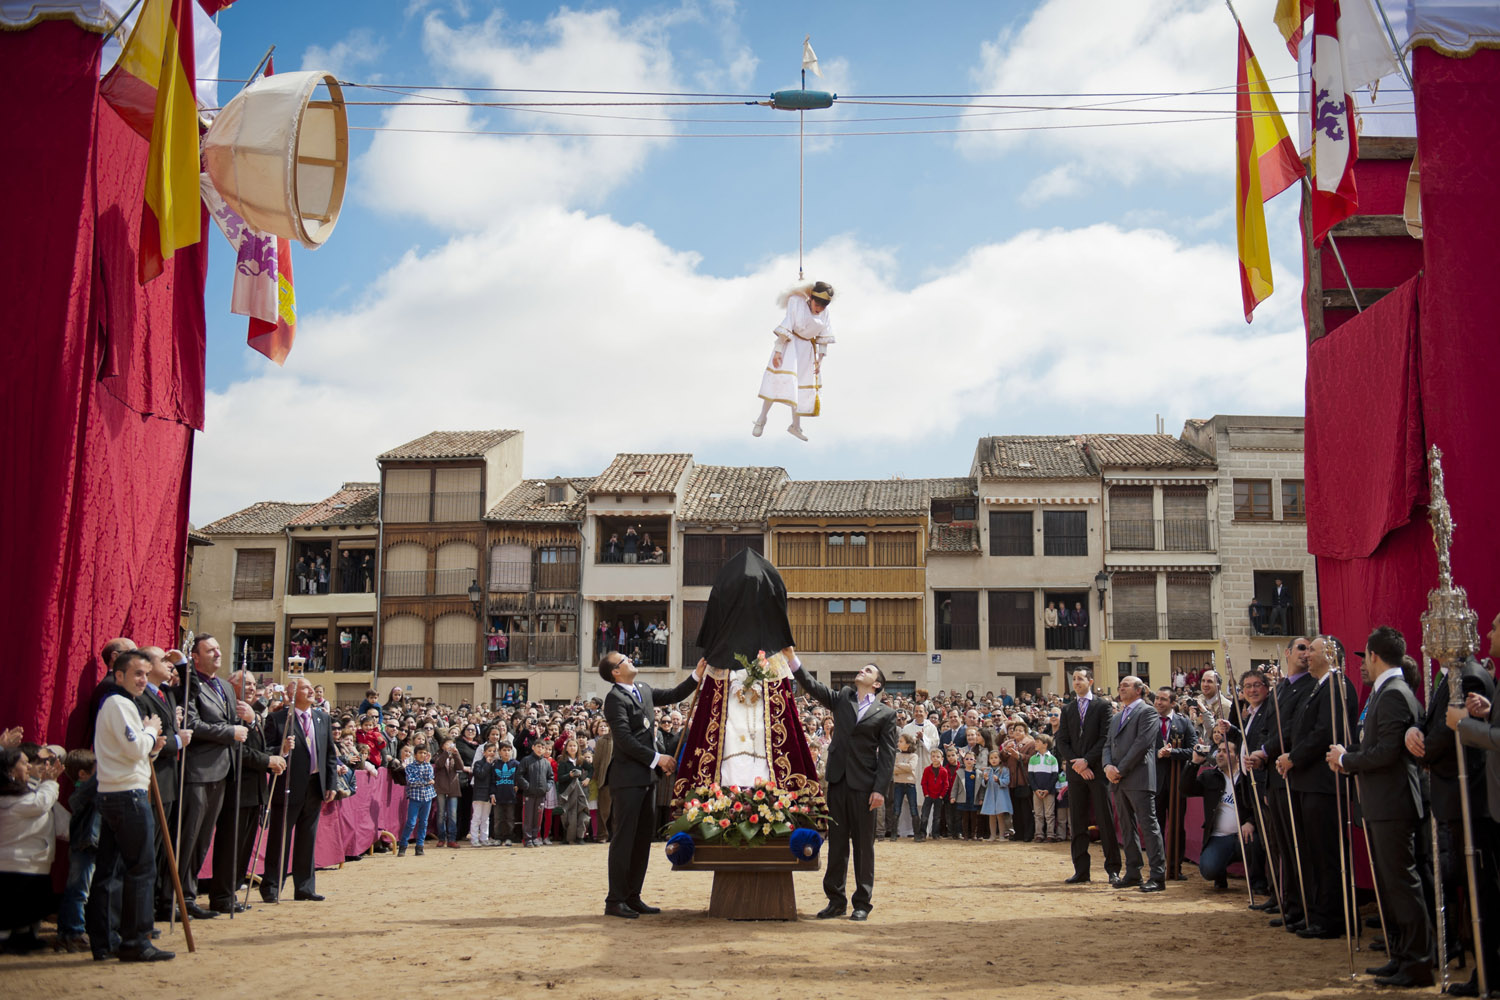 April 8, 2012. Pablo Leal Requejo plays the role of an angel during the 'Bajada del Angel' Eastern Holy Week celebration in Penafiel, Spain.